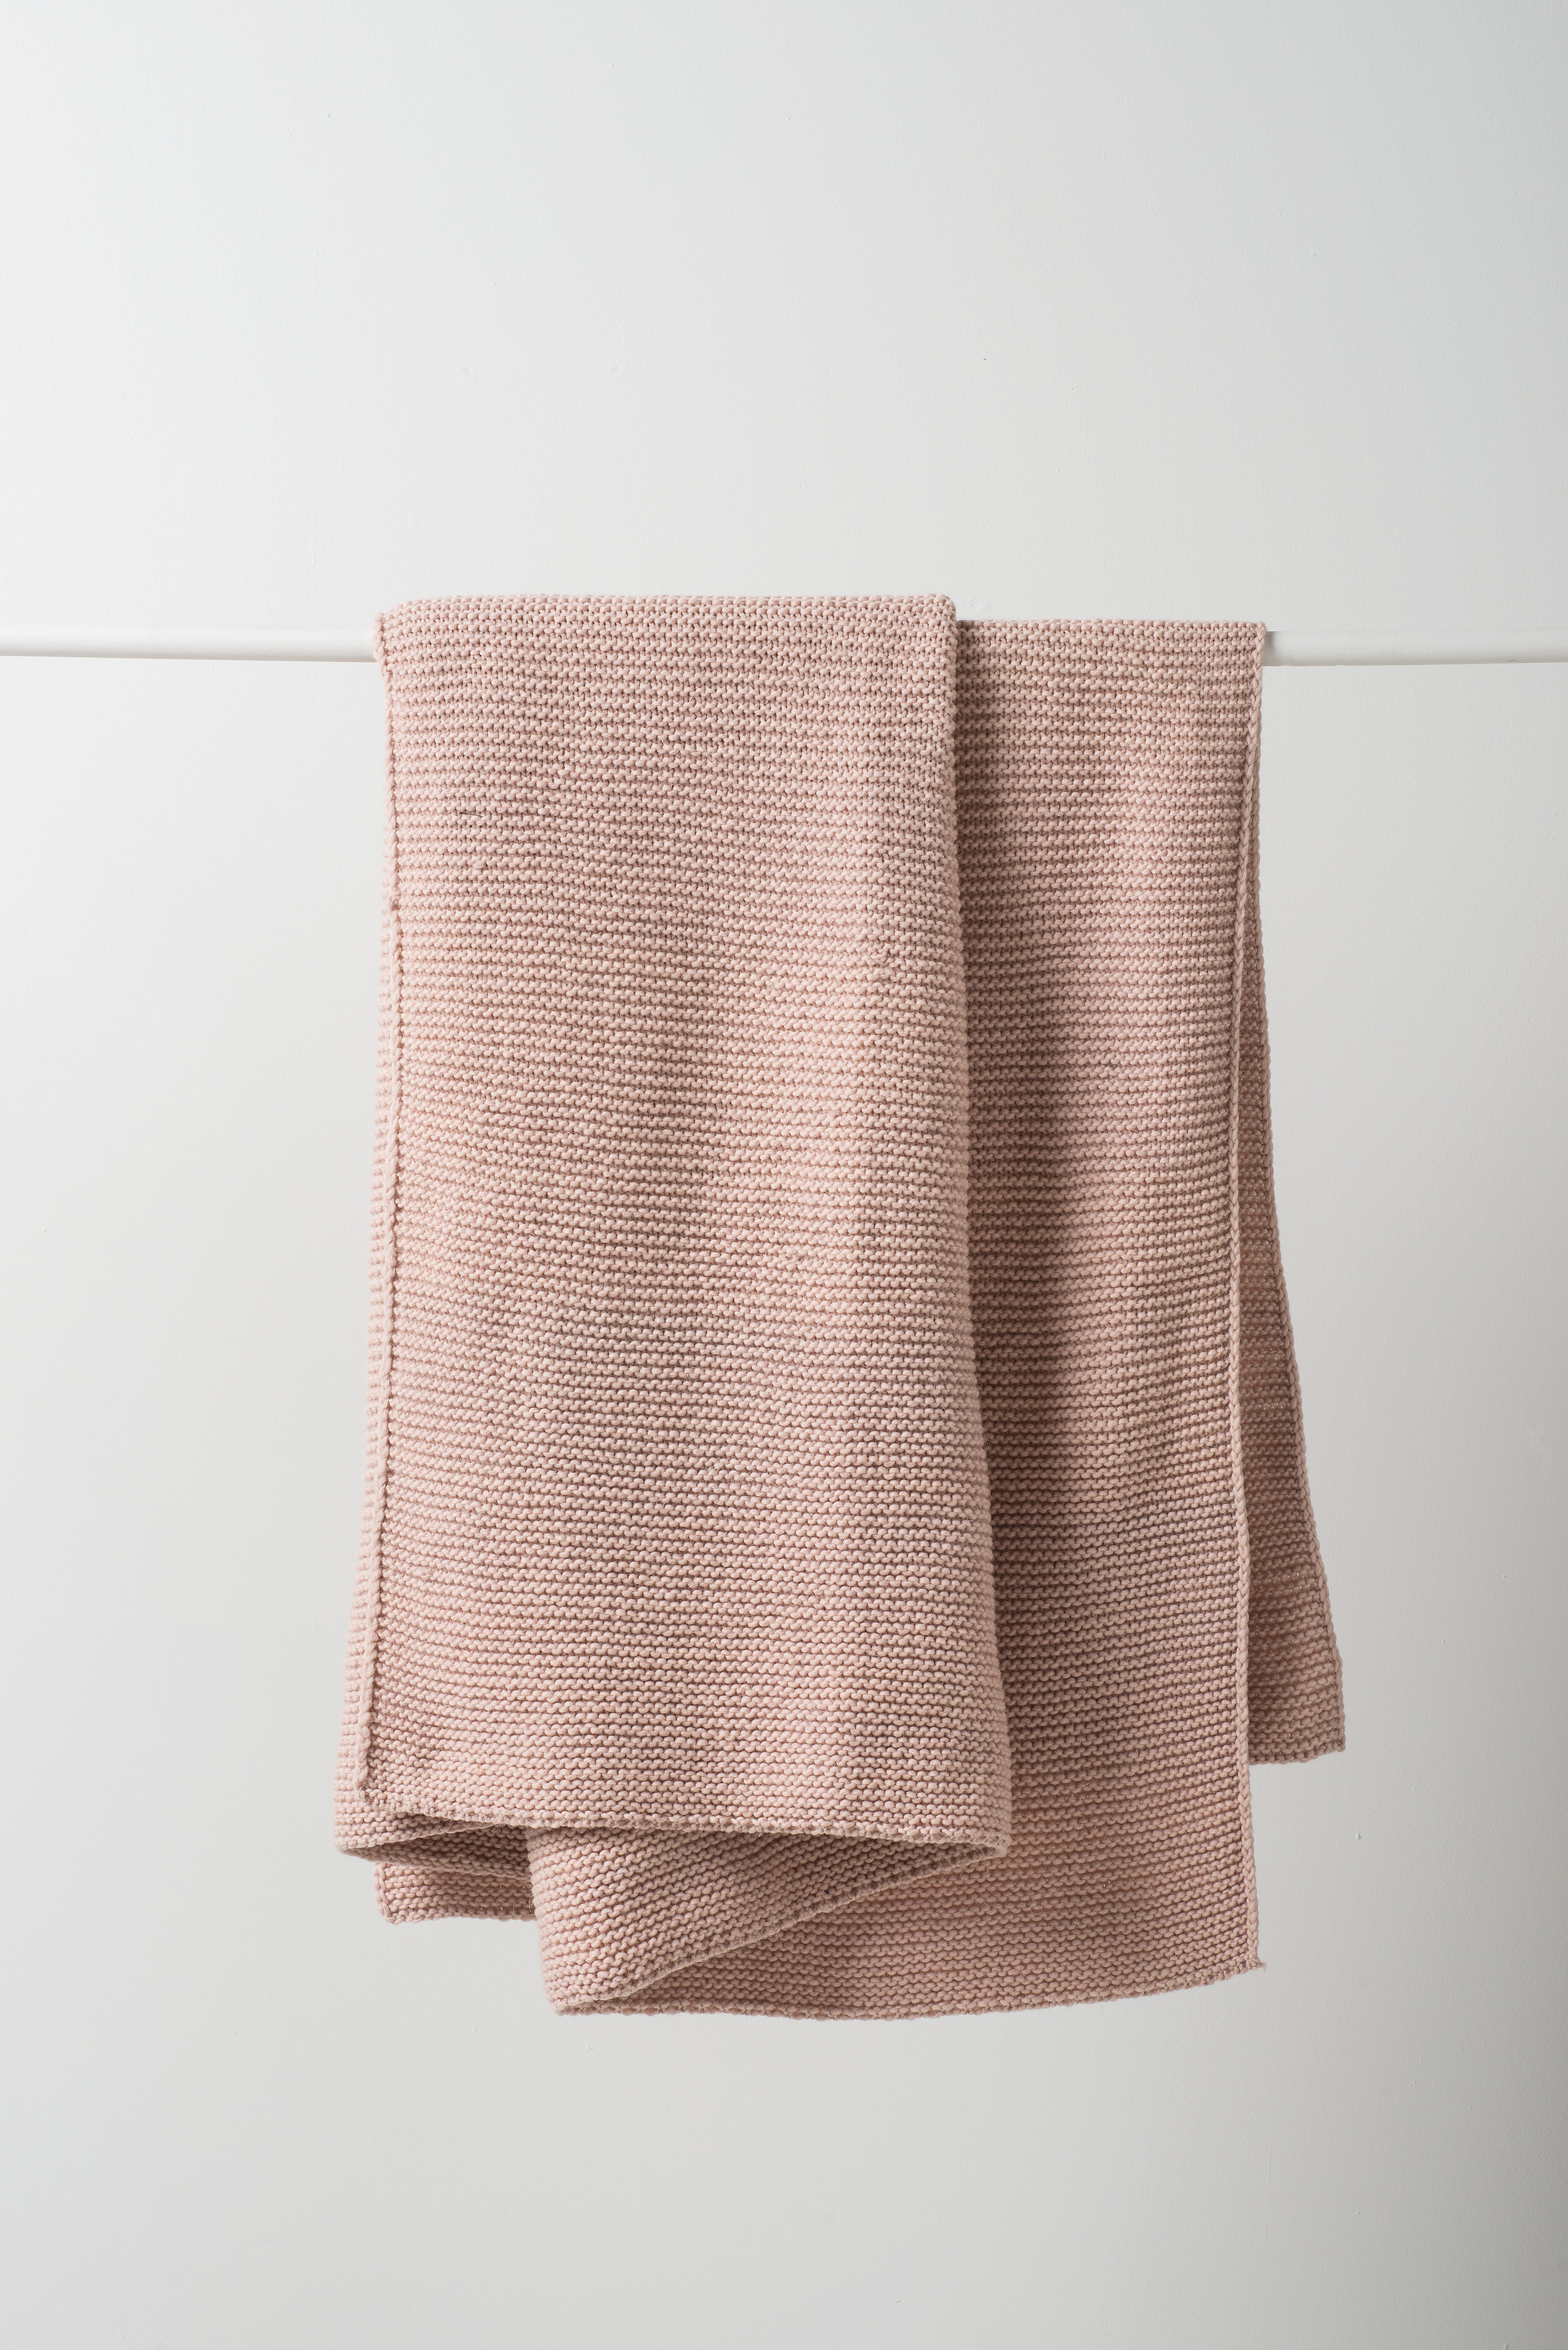 Purl Knit Wool Throw $239